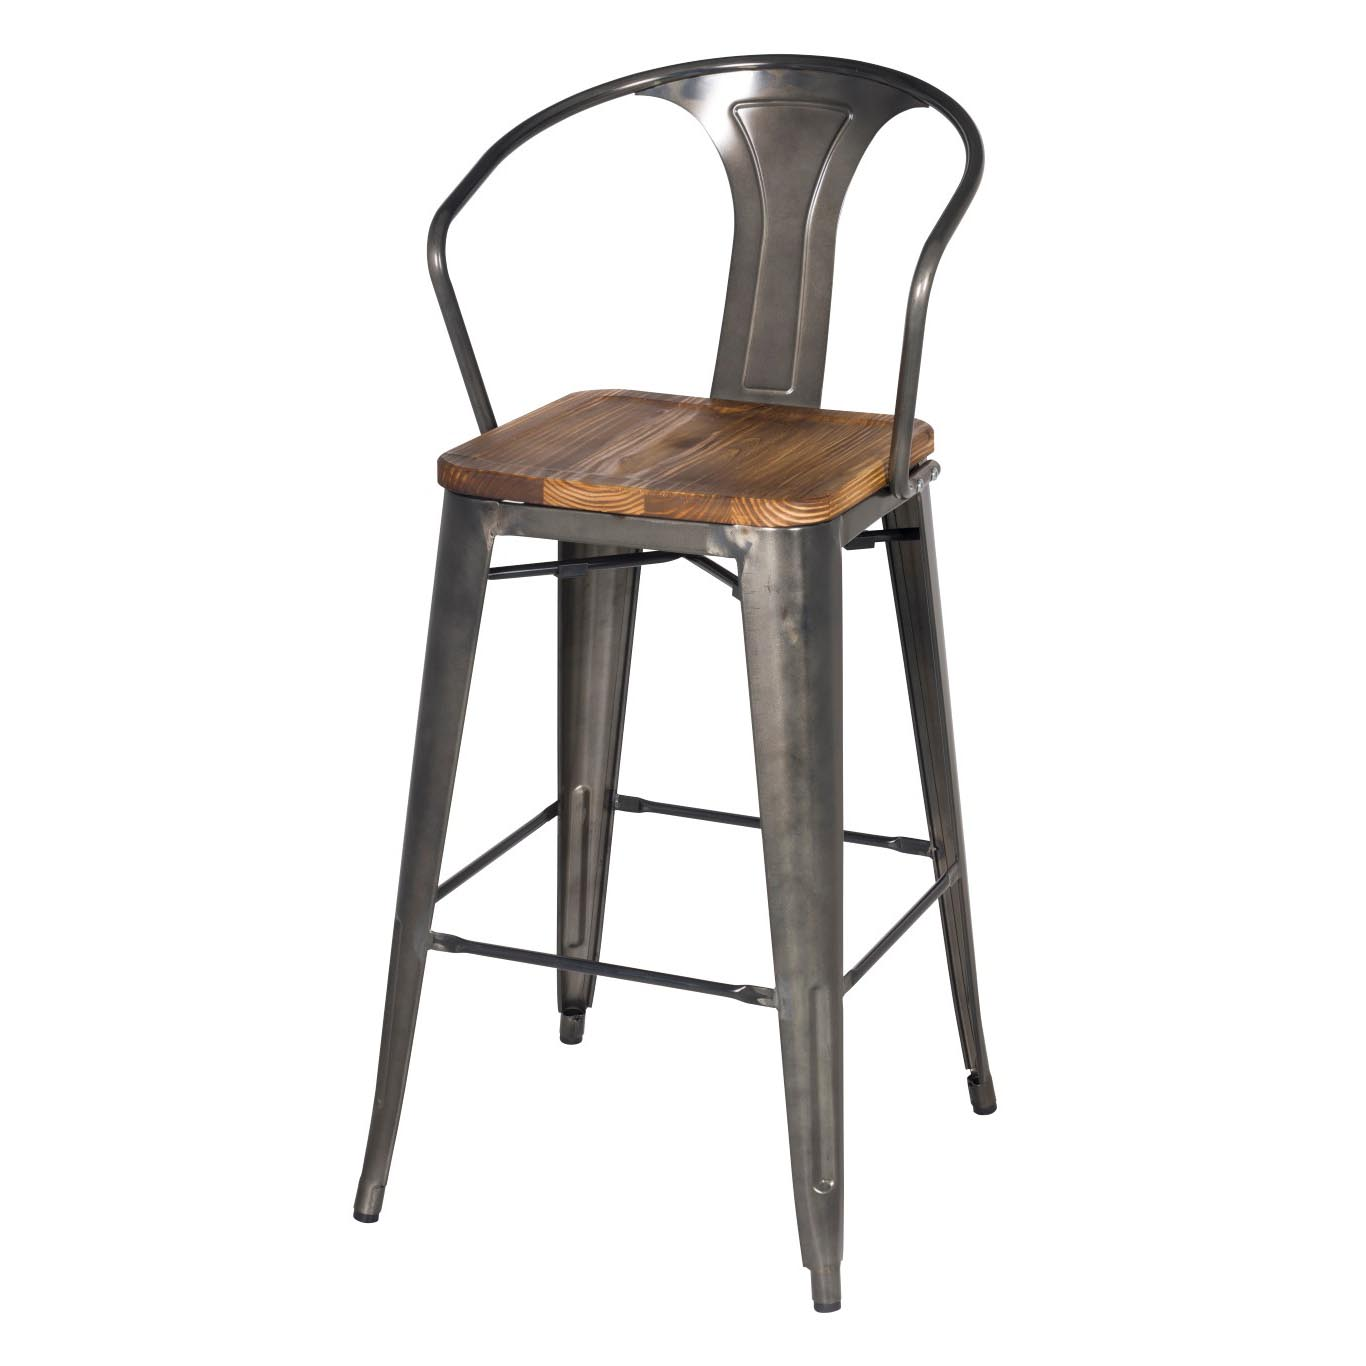 Metropolis Metal Bar Stool Wood Seat Gunmetal Set Of 4 By Npd New Pacific Direct